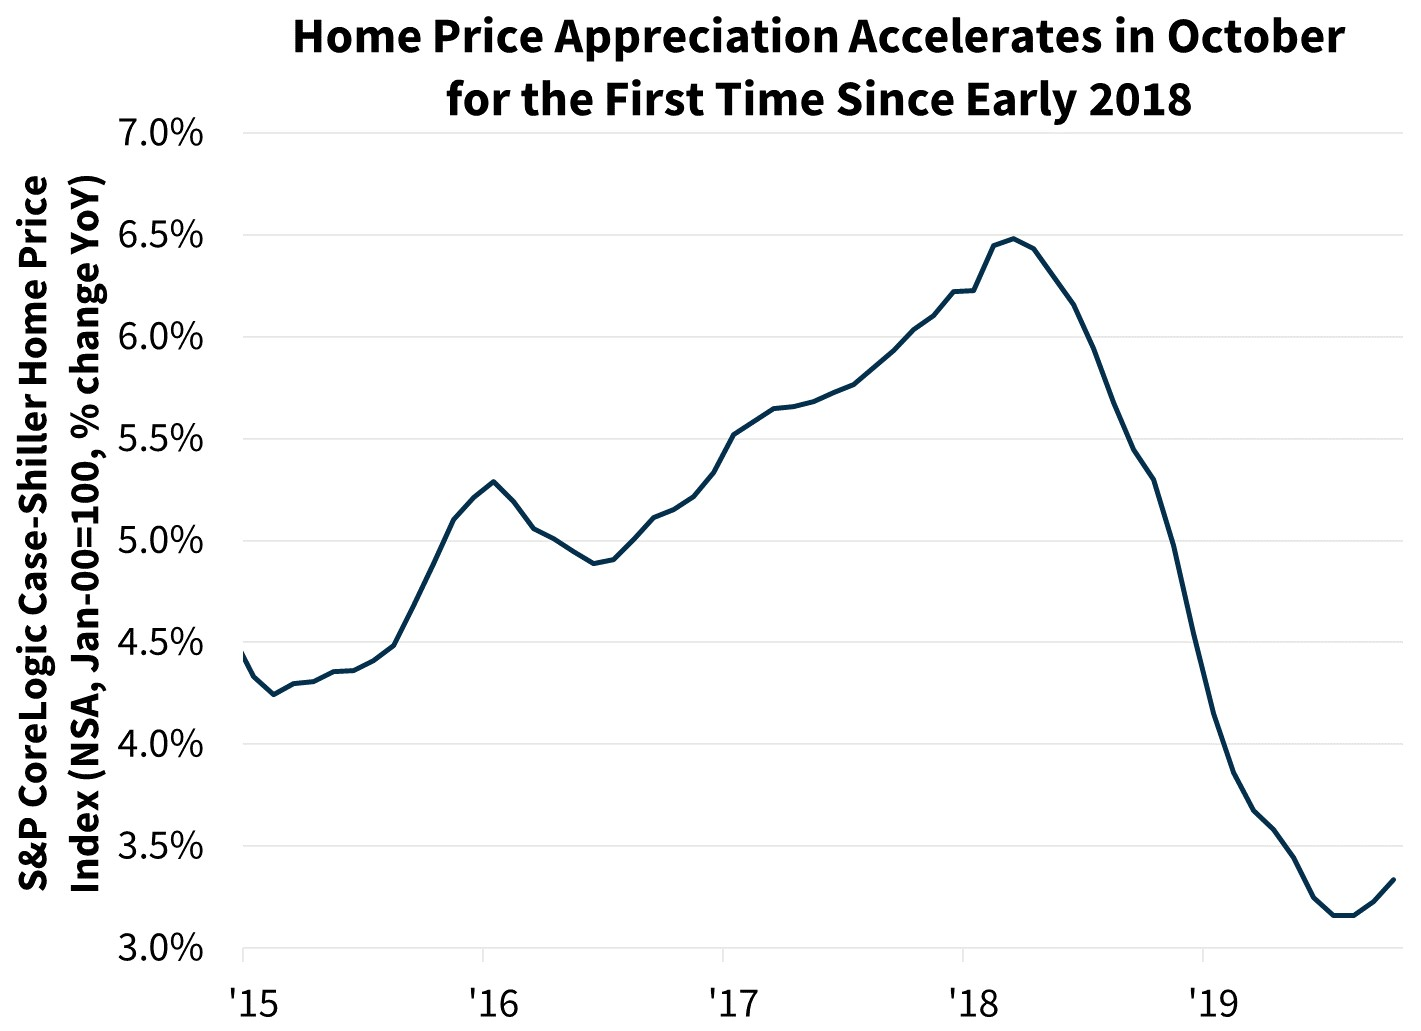 Home Price Appreciation Accelerates in October for the First Time Since Early 2008